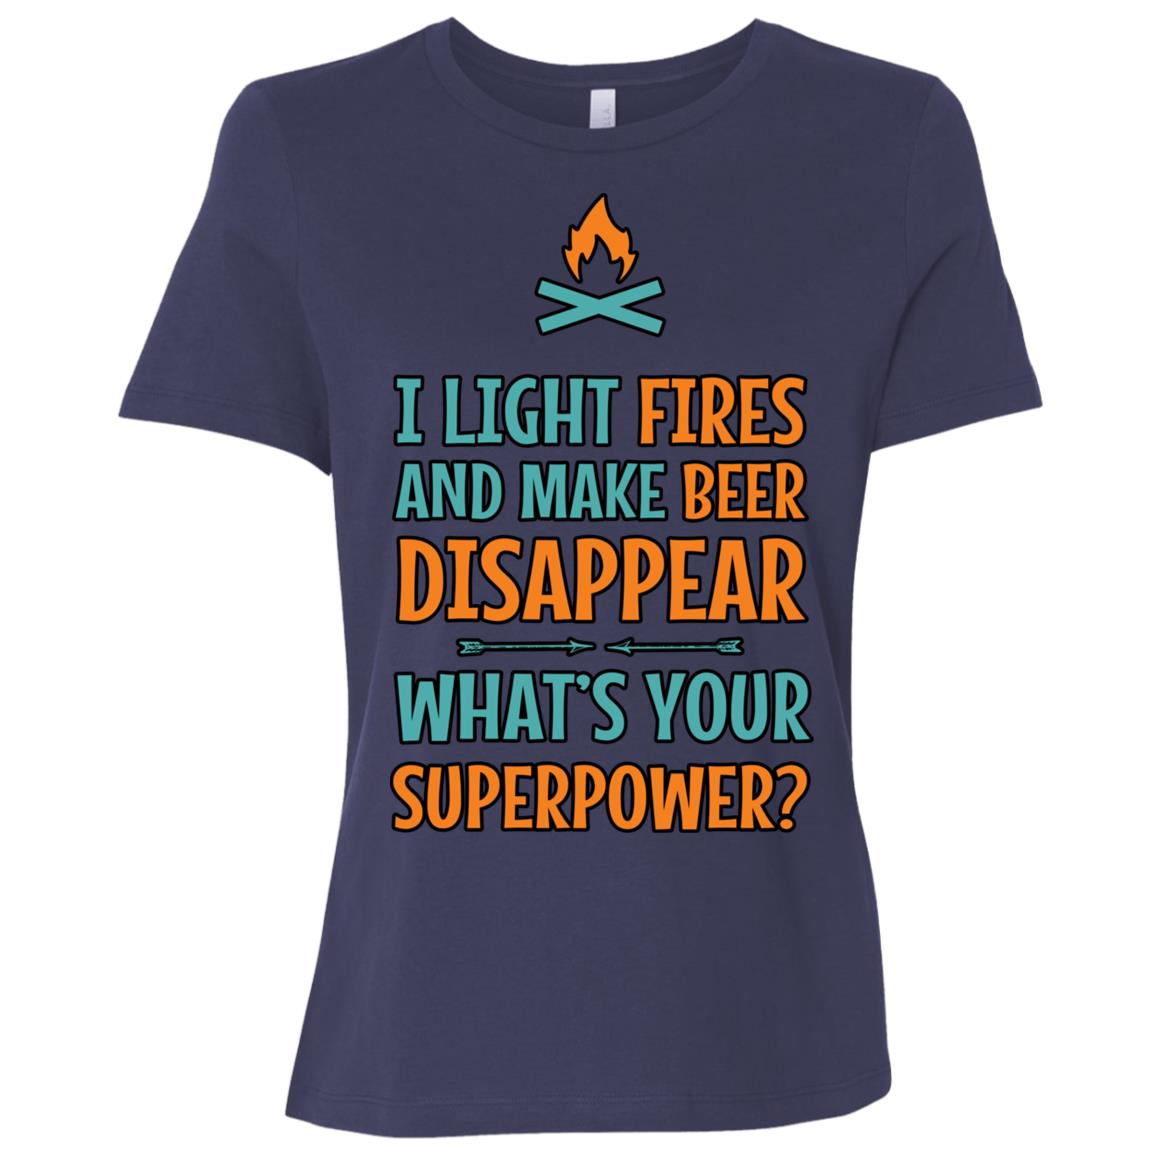 I Light Fires And Make Beer Disappear Camping Women Short Sleeve T-Shirt